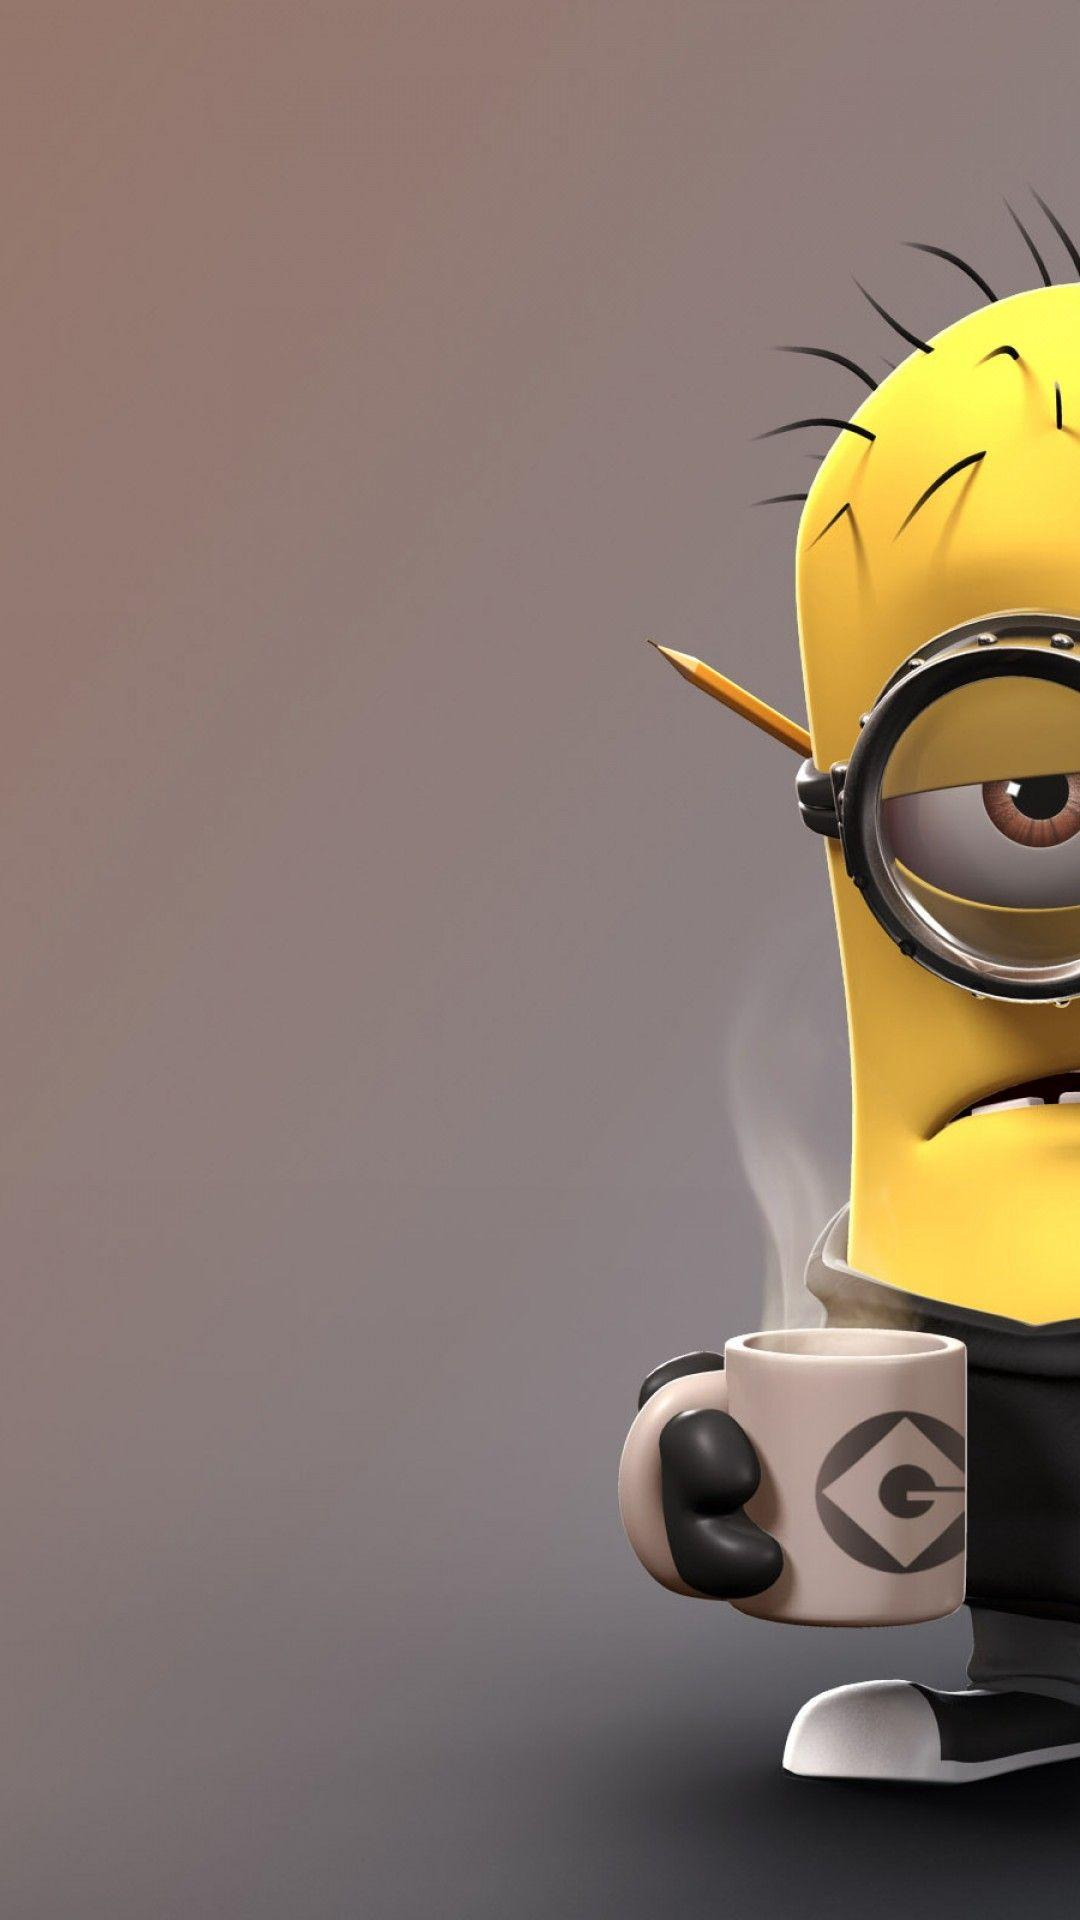 Iphone Minions Wallpapers Wallpaper Cave